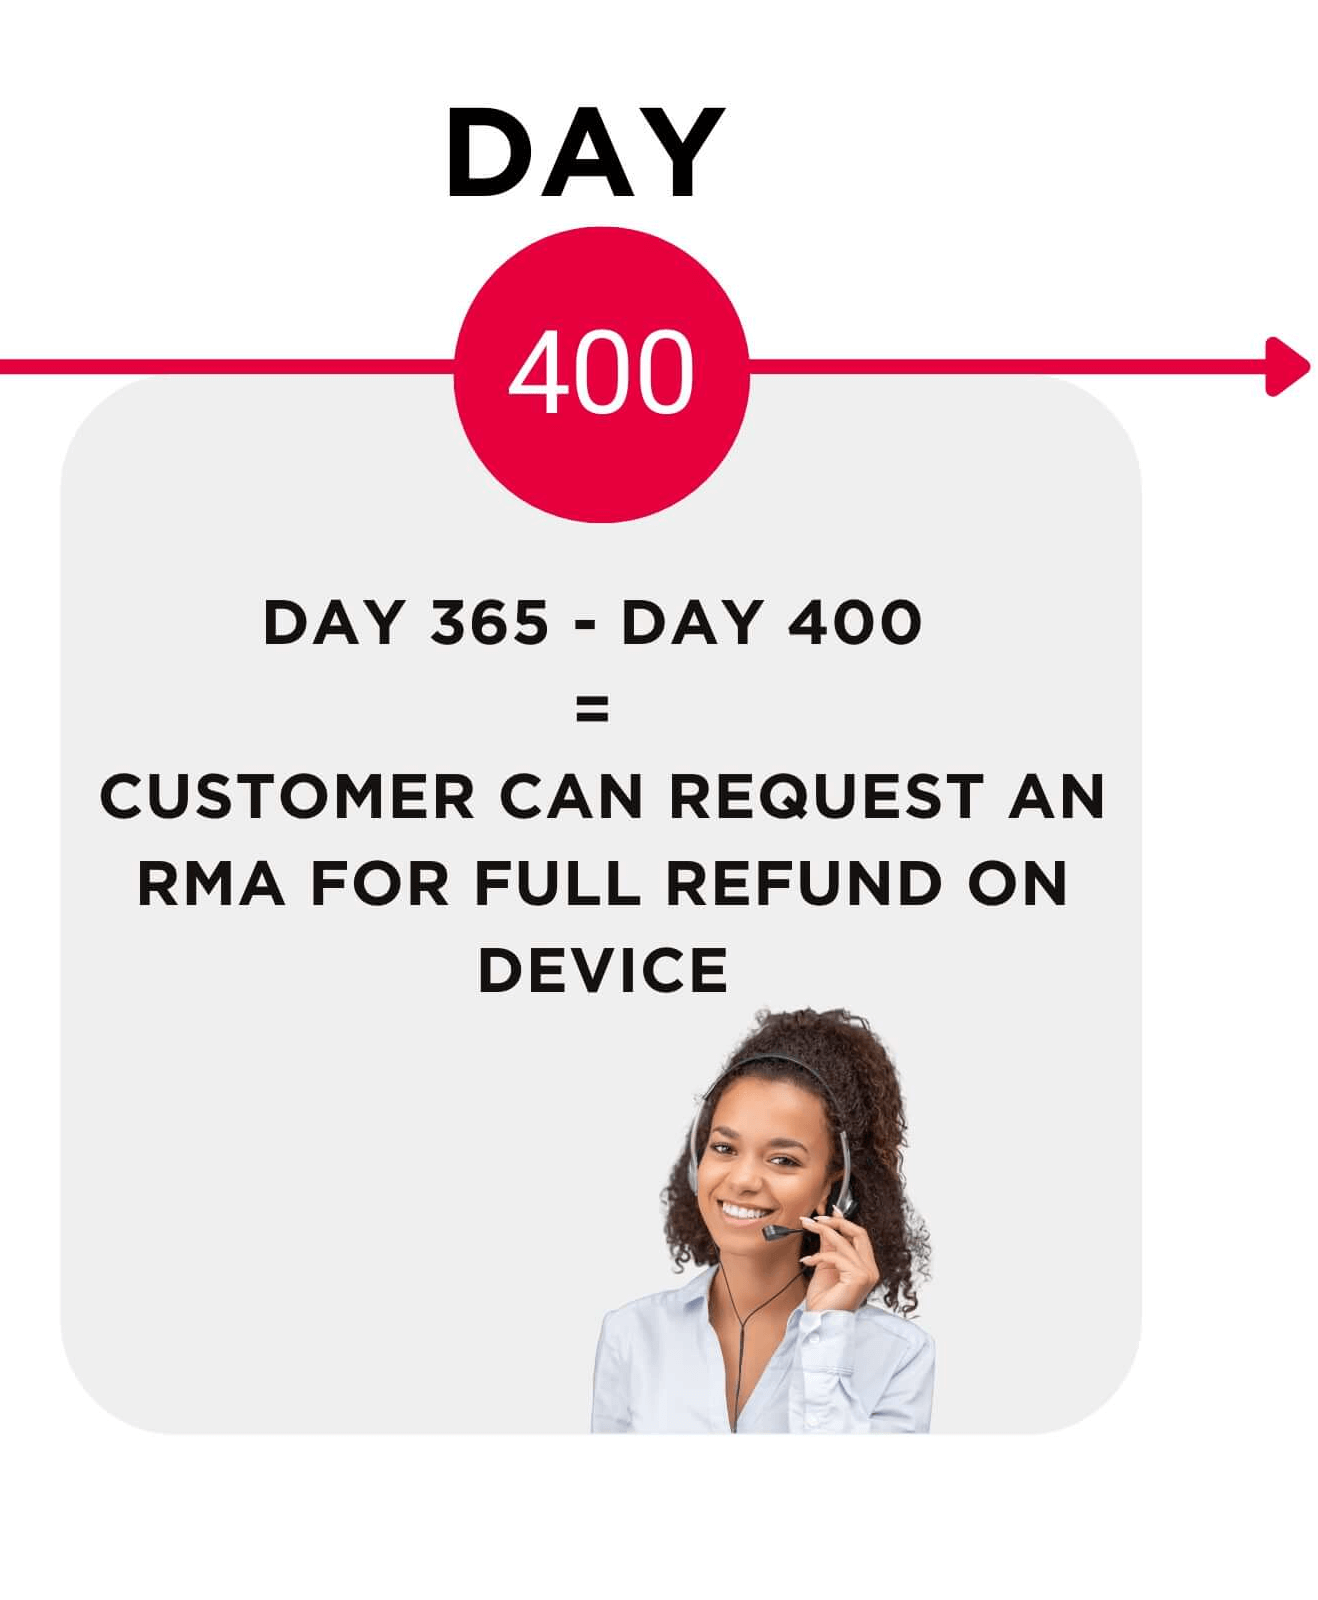 Day 400